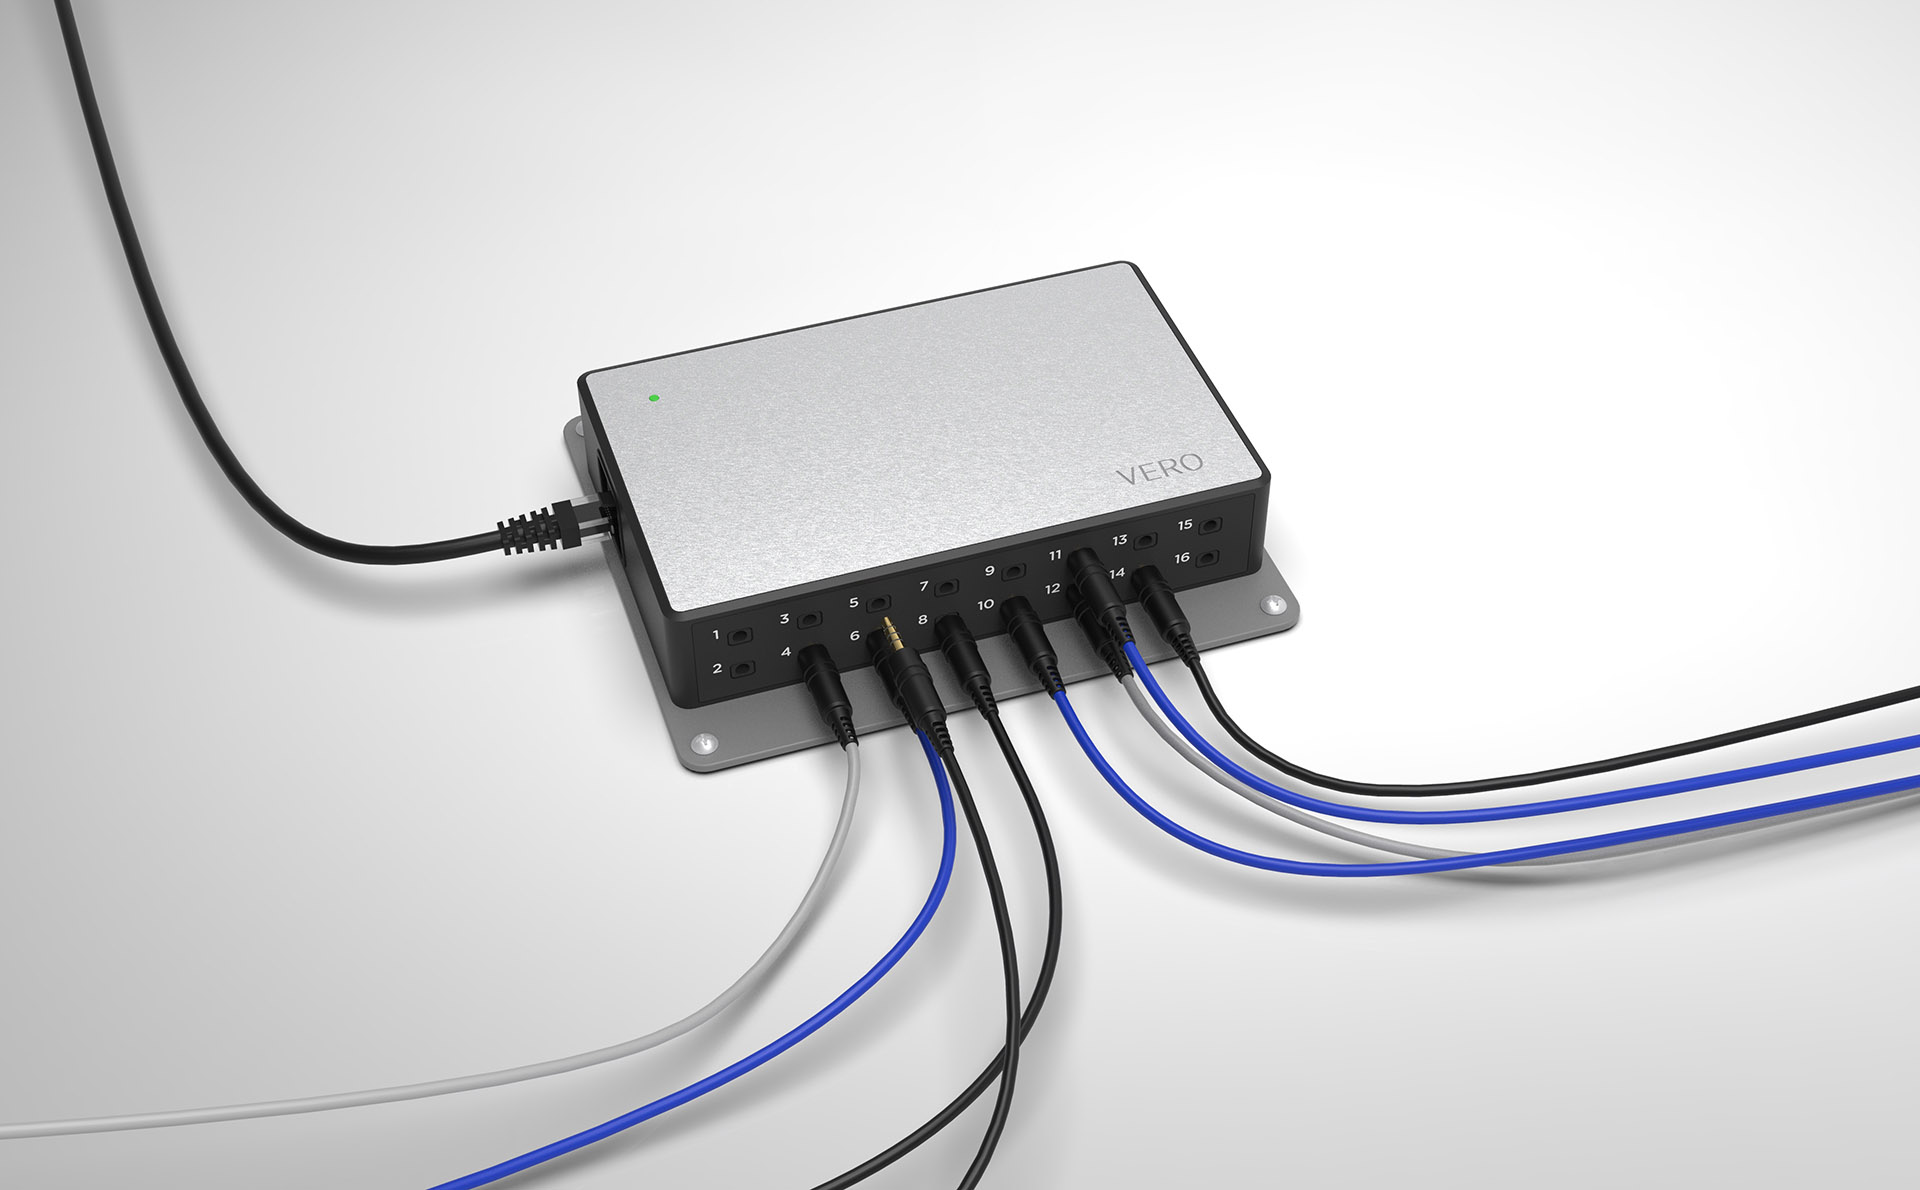 VERO Beverage Management Hardware on a light grey background, with several wires plugged into its front chassis.